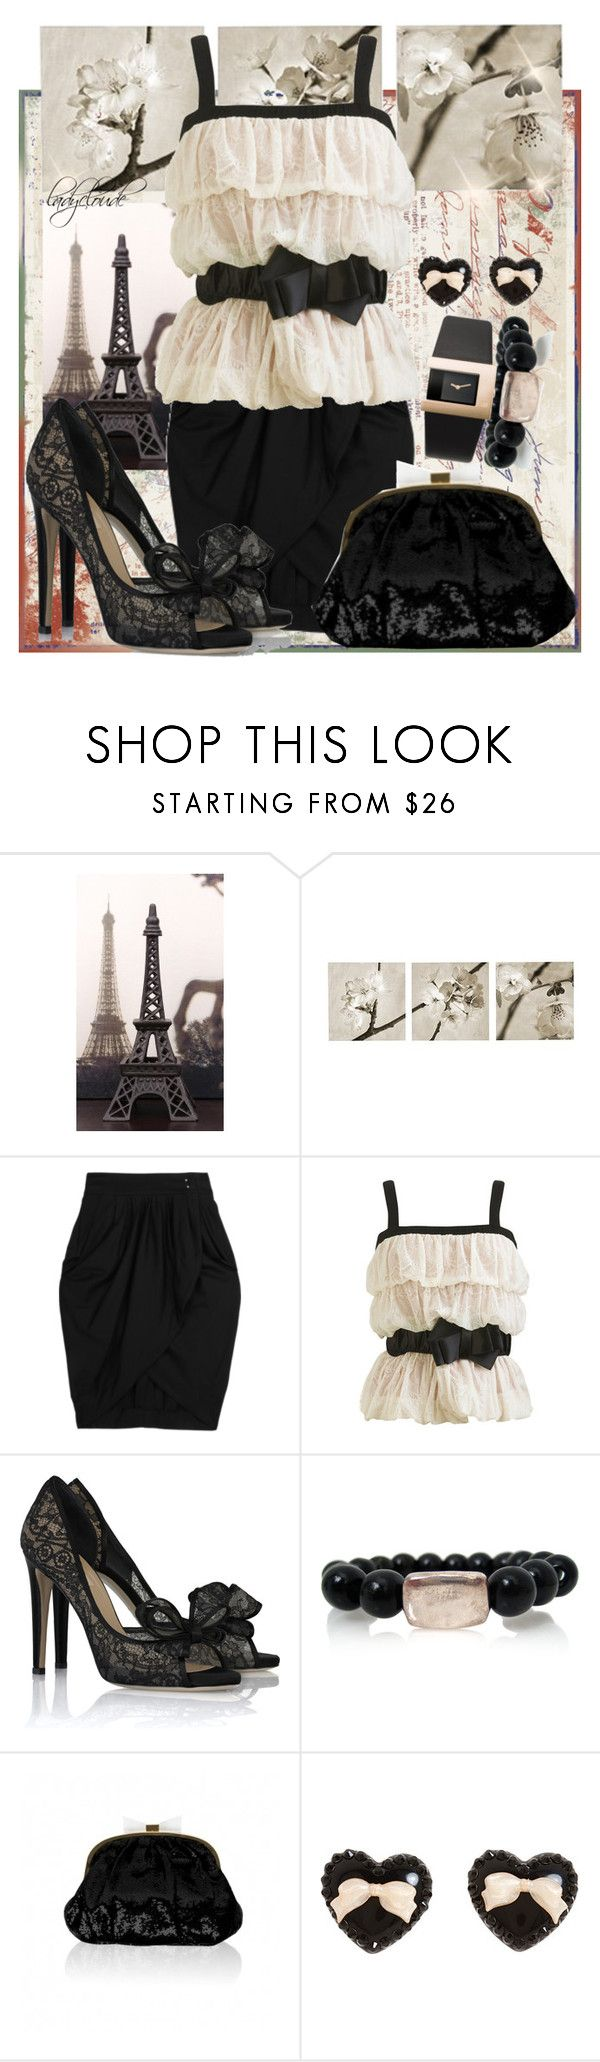 """""""24.Paris!"""" by ladycloude ❤ liked on Polyvore featuring Melissa, Nicole, McQ by Alexander McQueen, Arden B., Valentino, Rosa Maria, Felix Rey, Danish Designs and Tarina Tarantino"""